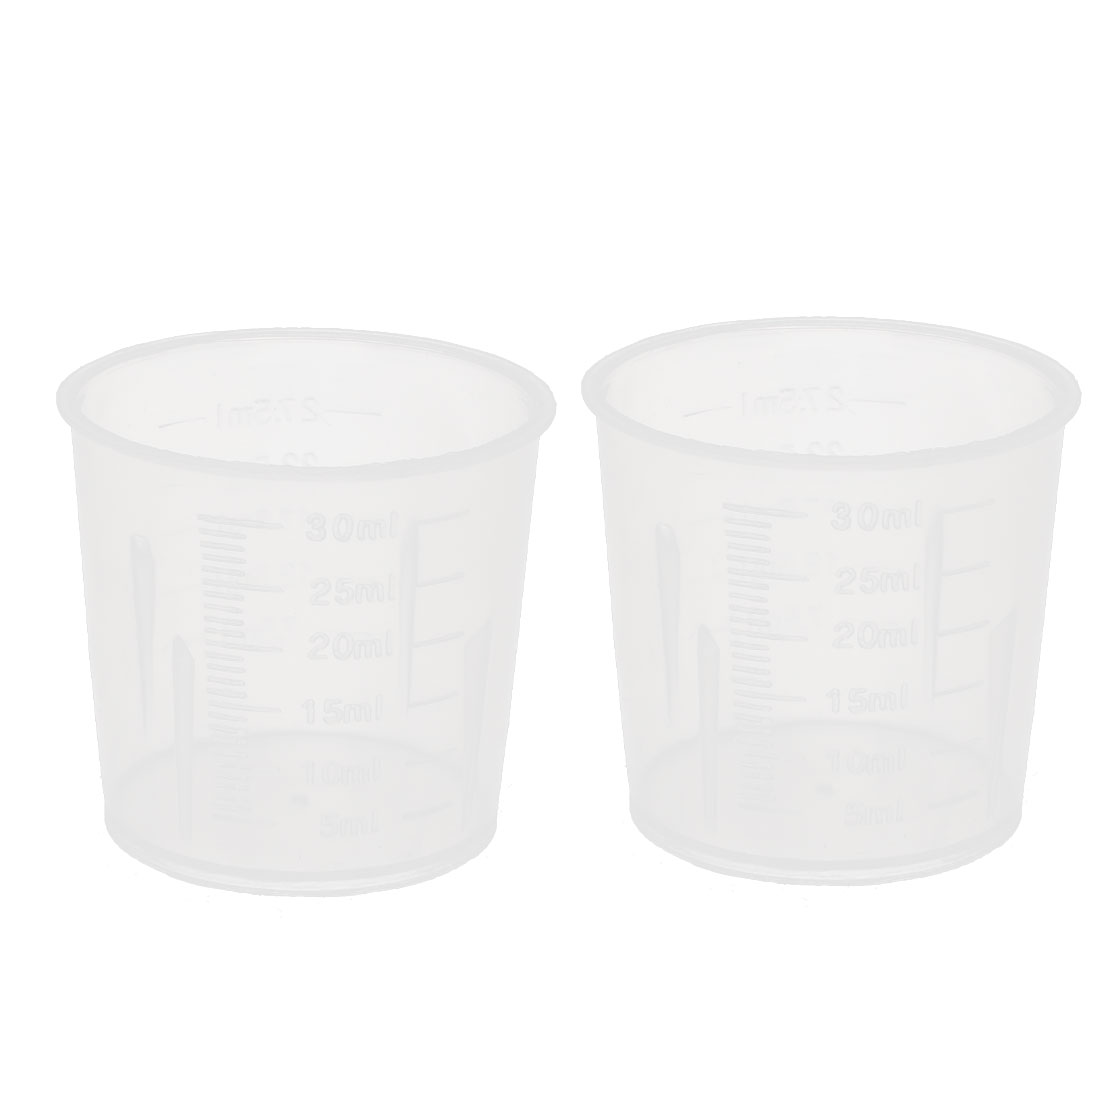 30mL Laboratory Spout Container Measuring Cup Beaker Clear 2pcs